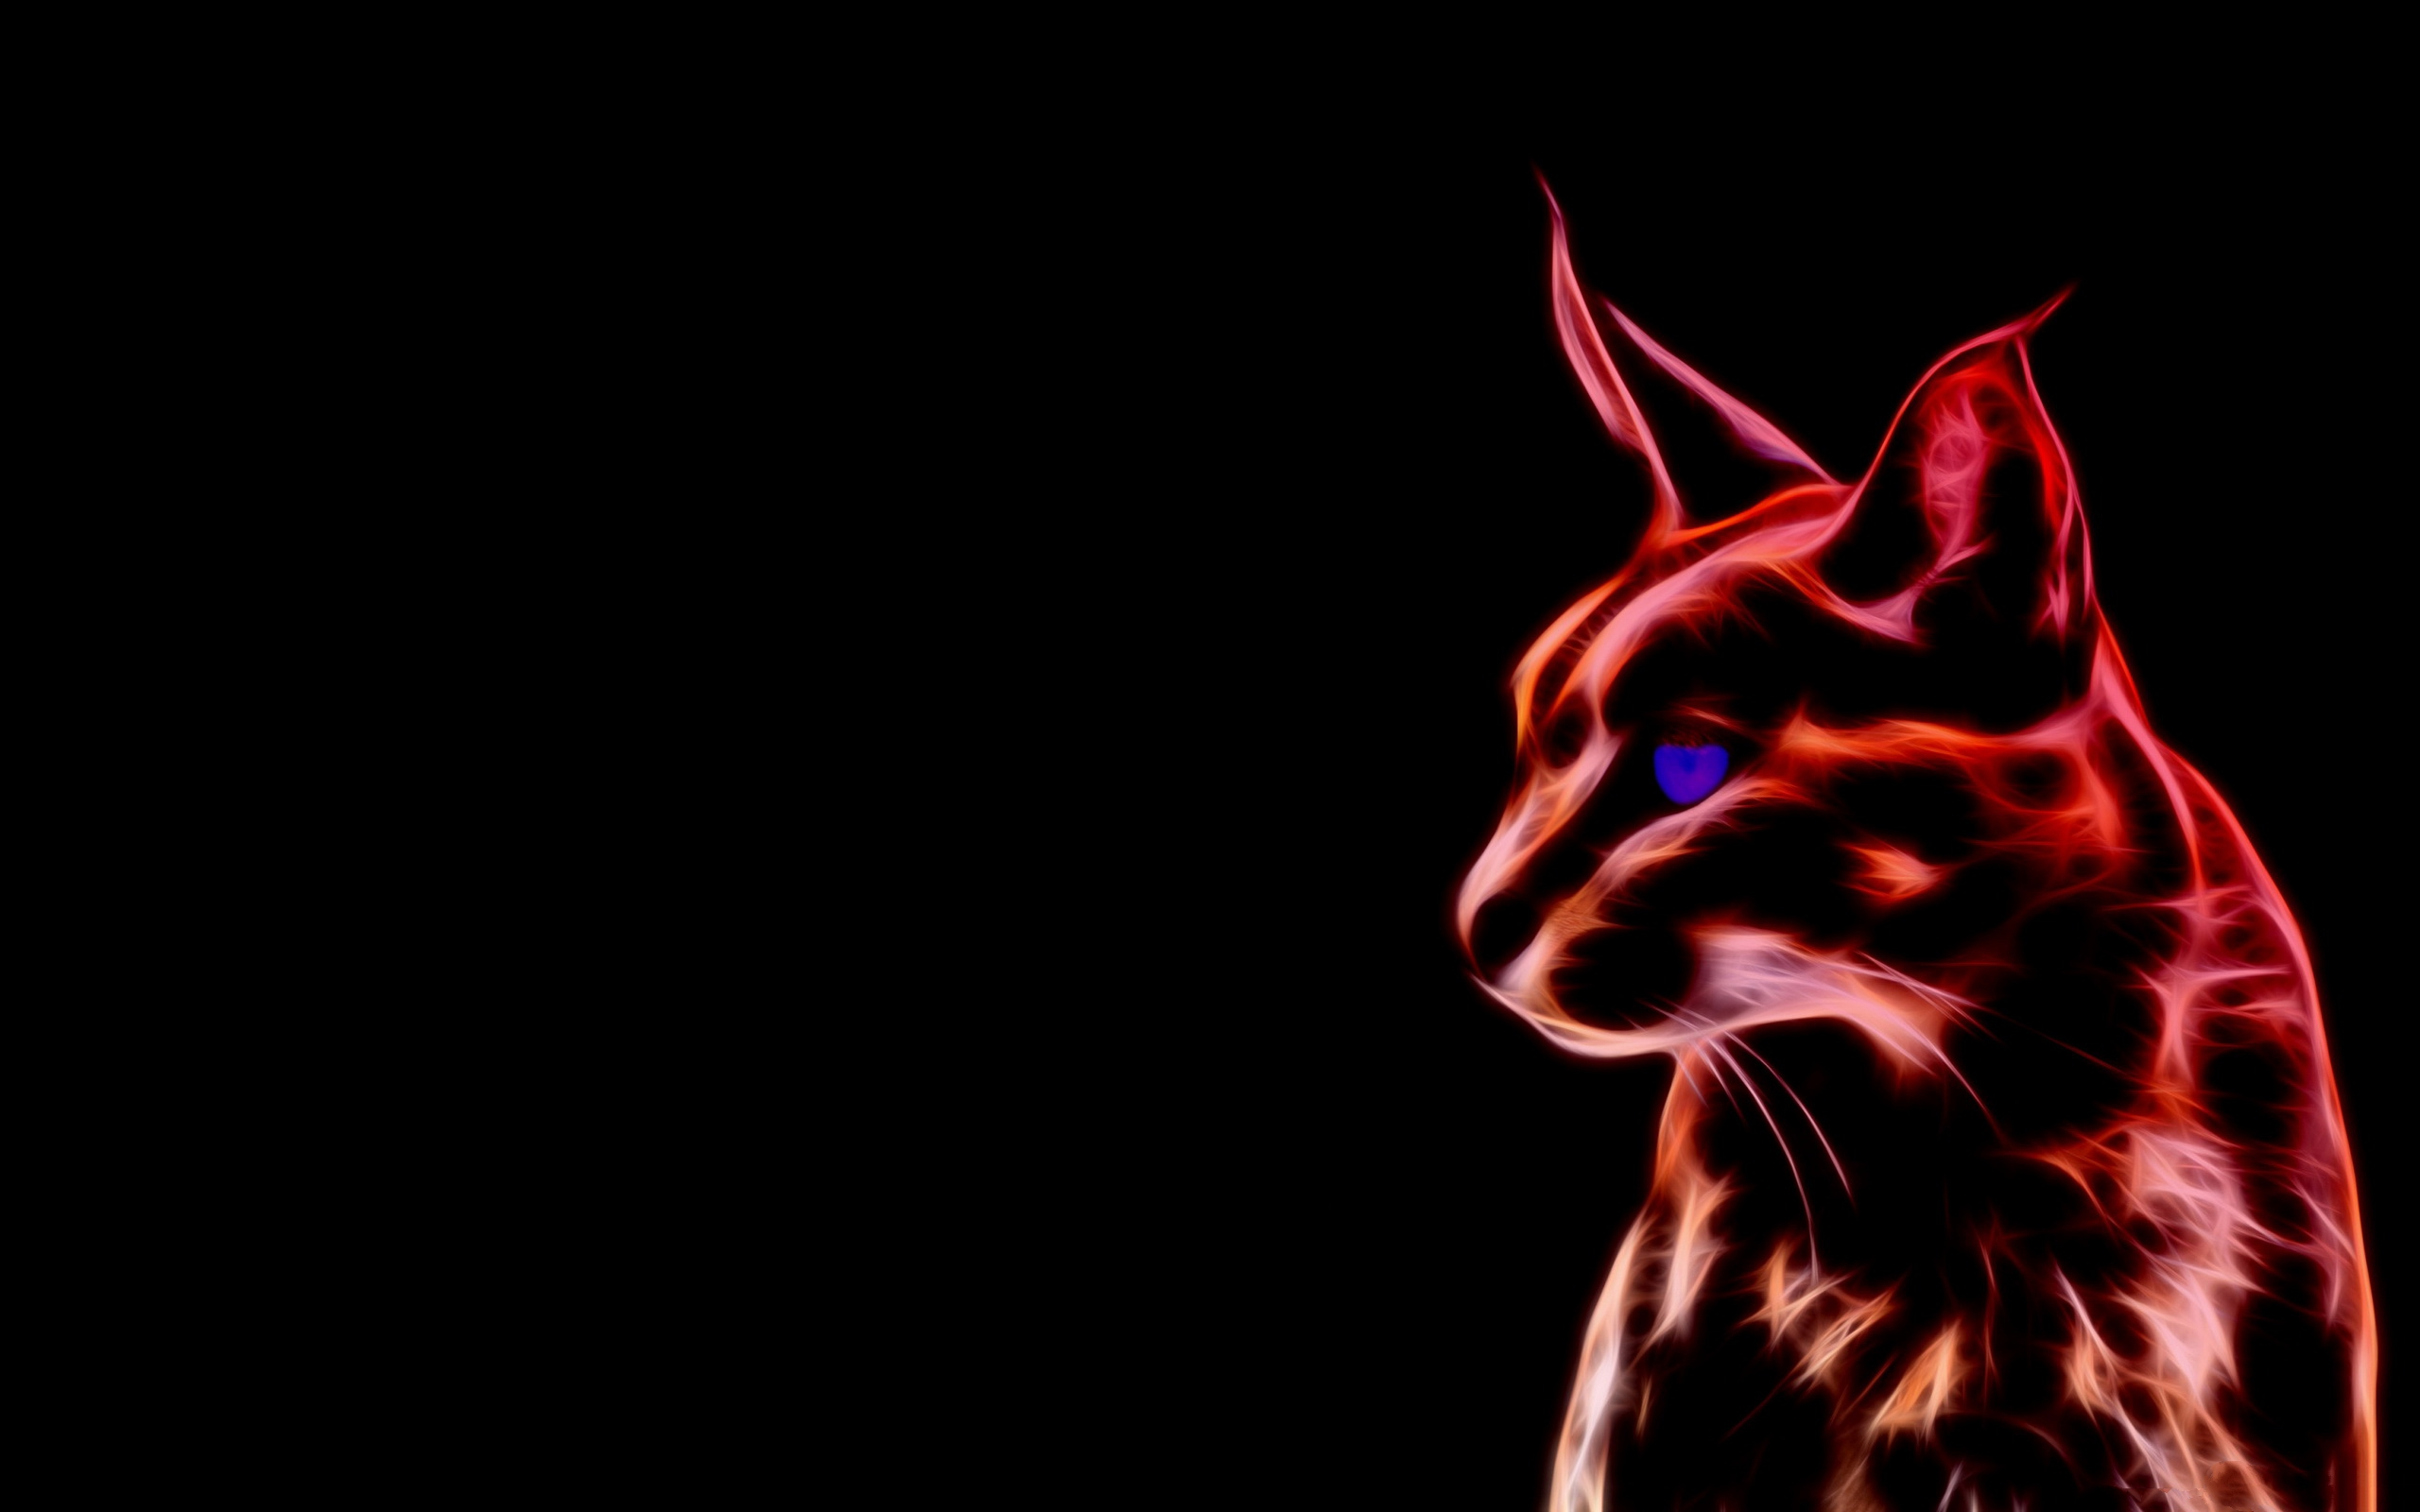 Caracal HD Wallpaper  Background Image  2560x1600  ID:565665  Wallpaper Abyss